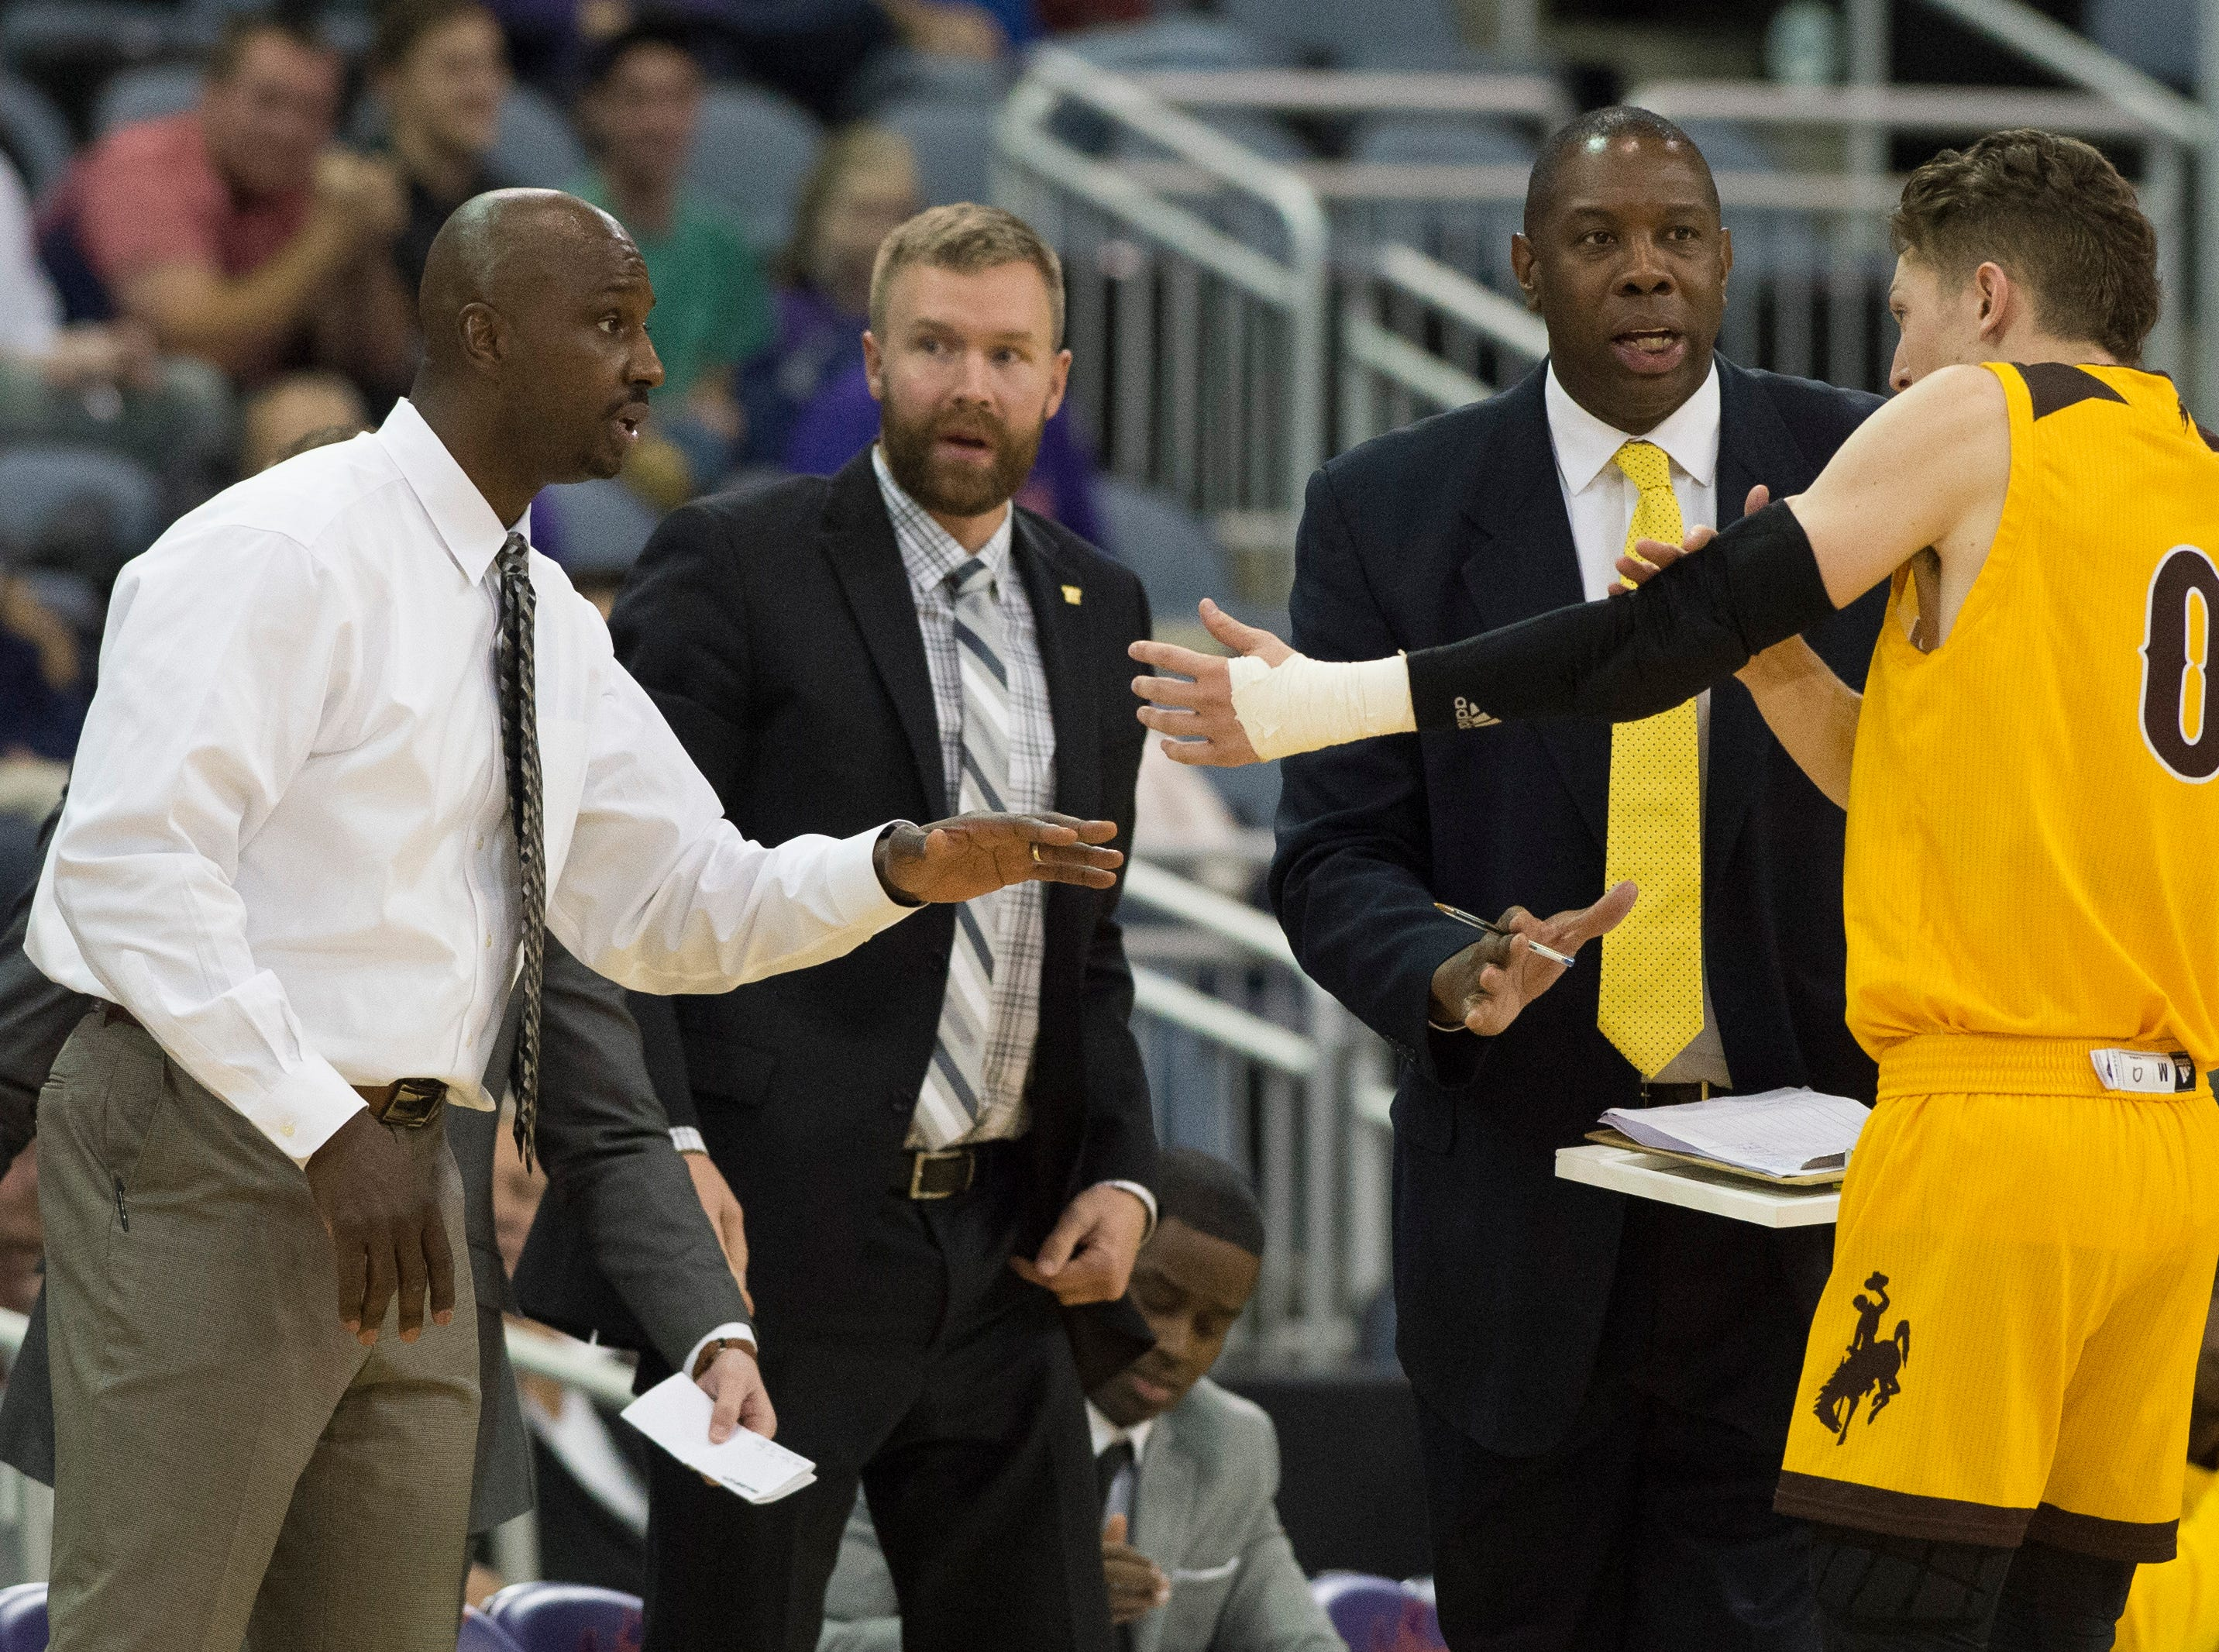 Wyoming's Head Coach Allen Edwards talks to Wyoming's Jake Hendricks (0) after Hendricks fouled out during the UE vs Wyoming game at the Ford Center Wednesday, Nov. 28, 2018. UE won 86-76.